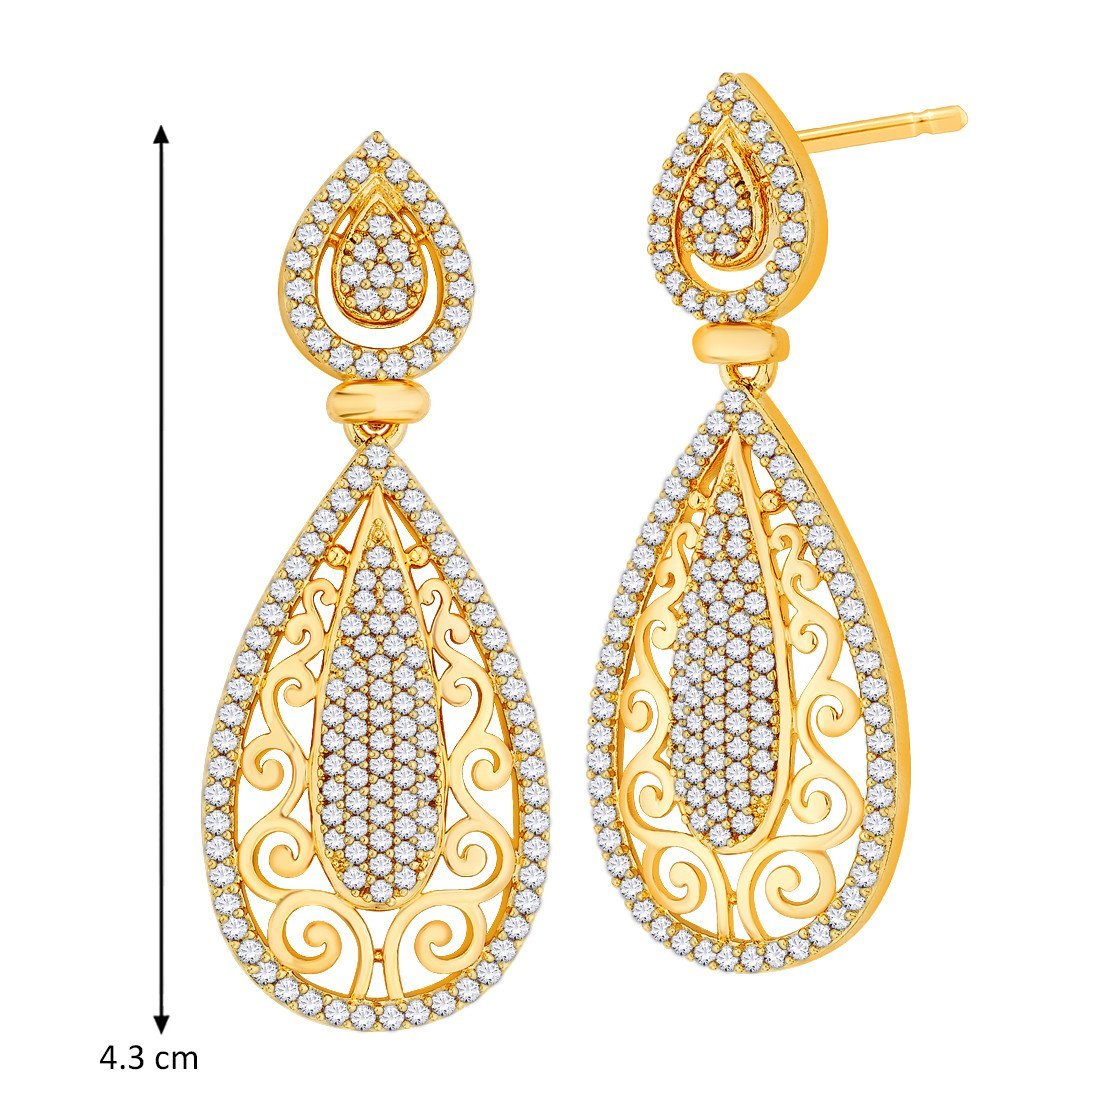 Shiering Filigree Earrings